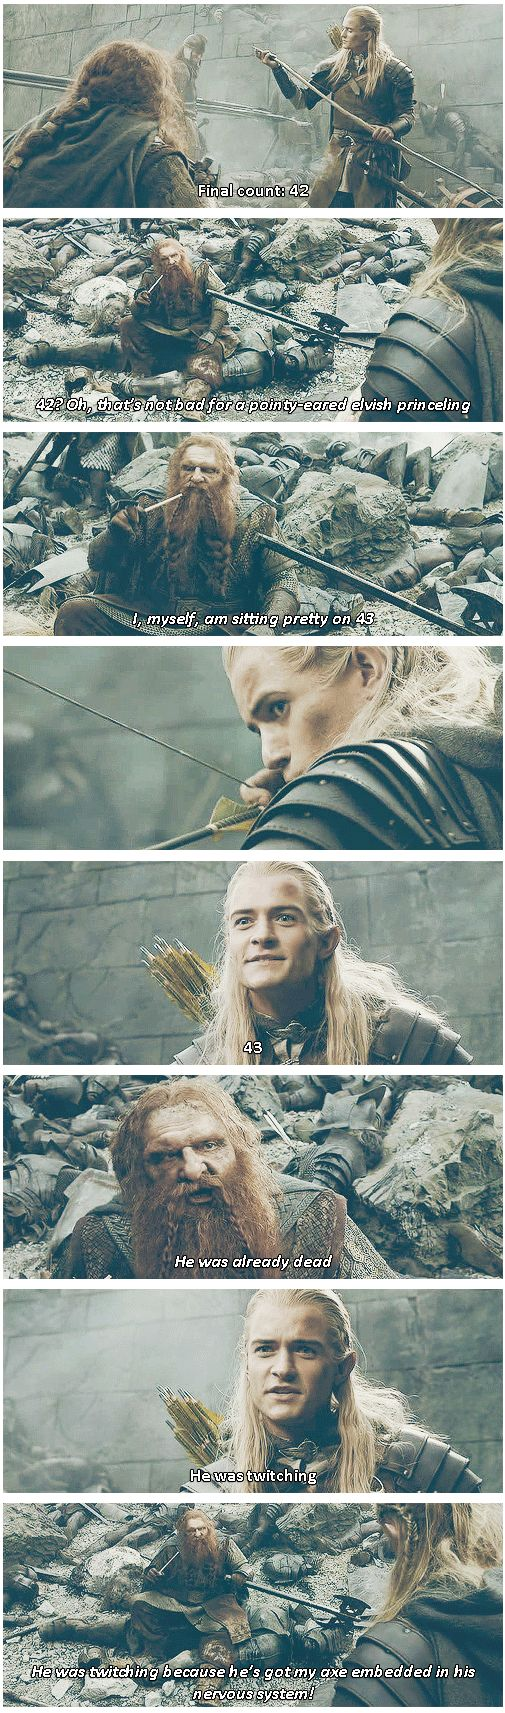 """He was twitching cause he's got my axe embedded in his nervous system!"" <-- the friendship between Gimli &  Legolas is one of my favorite in the whole trilogy."